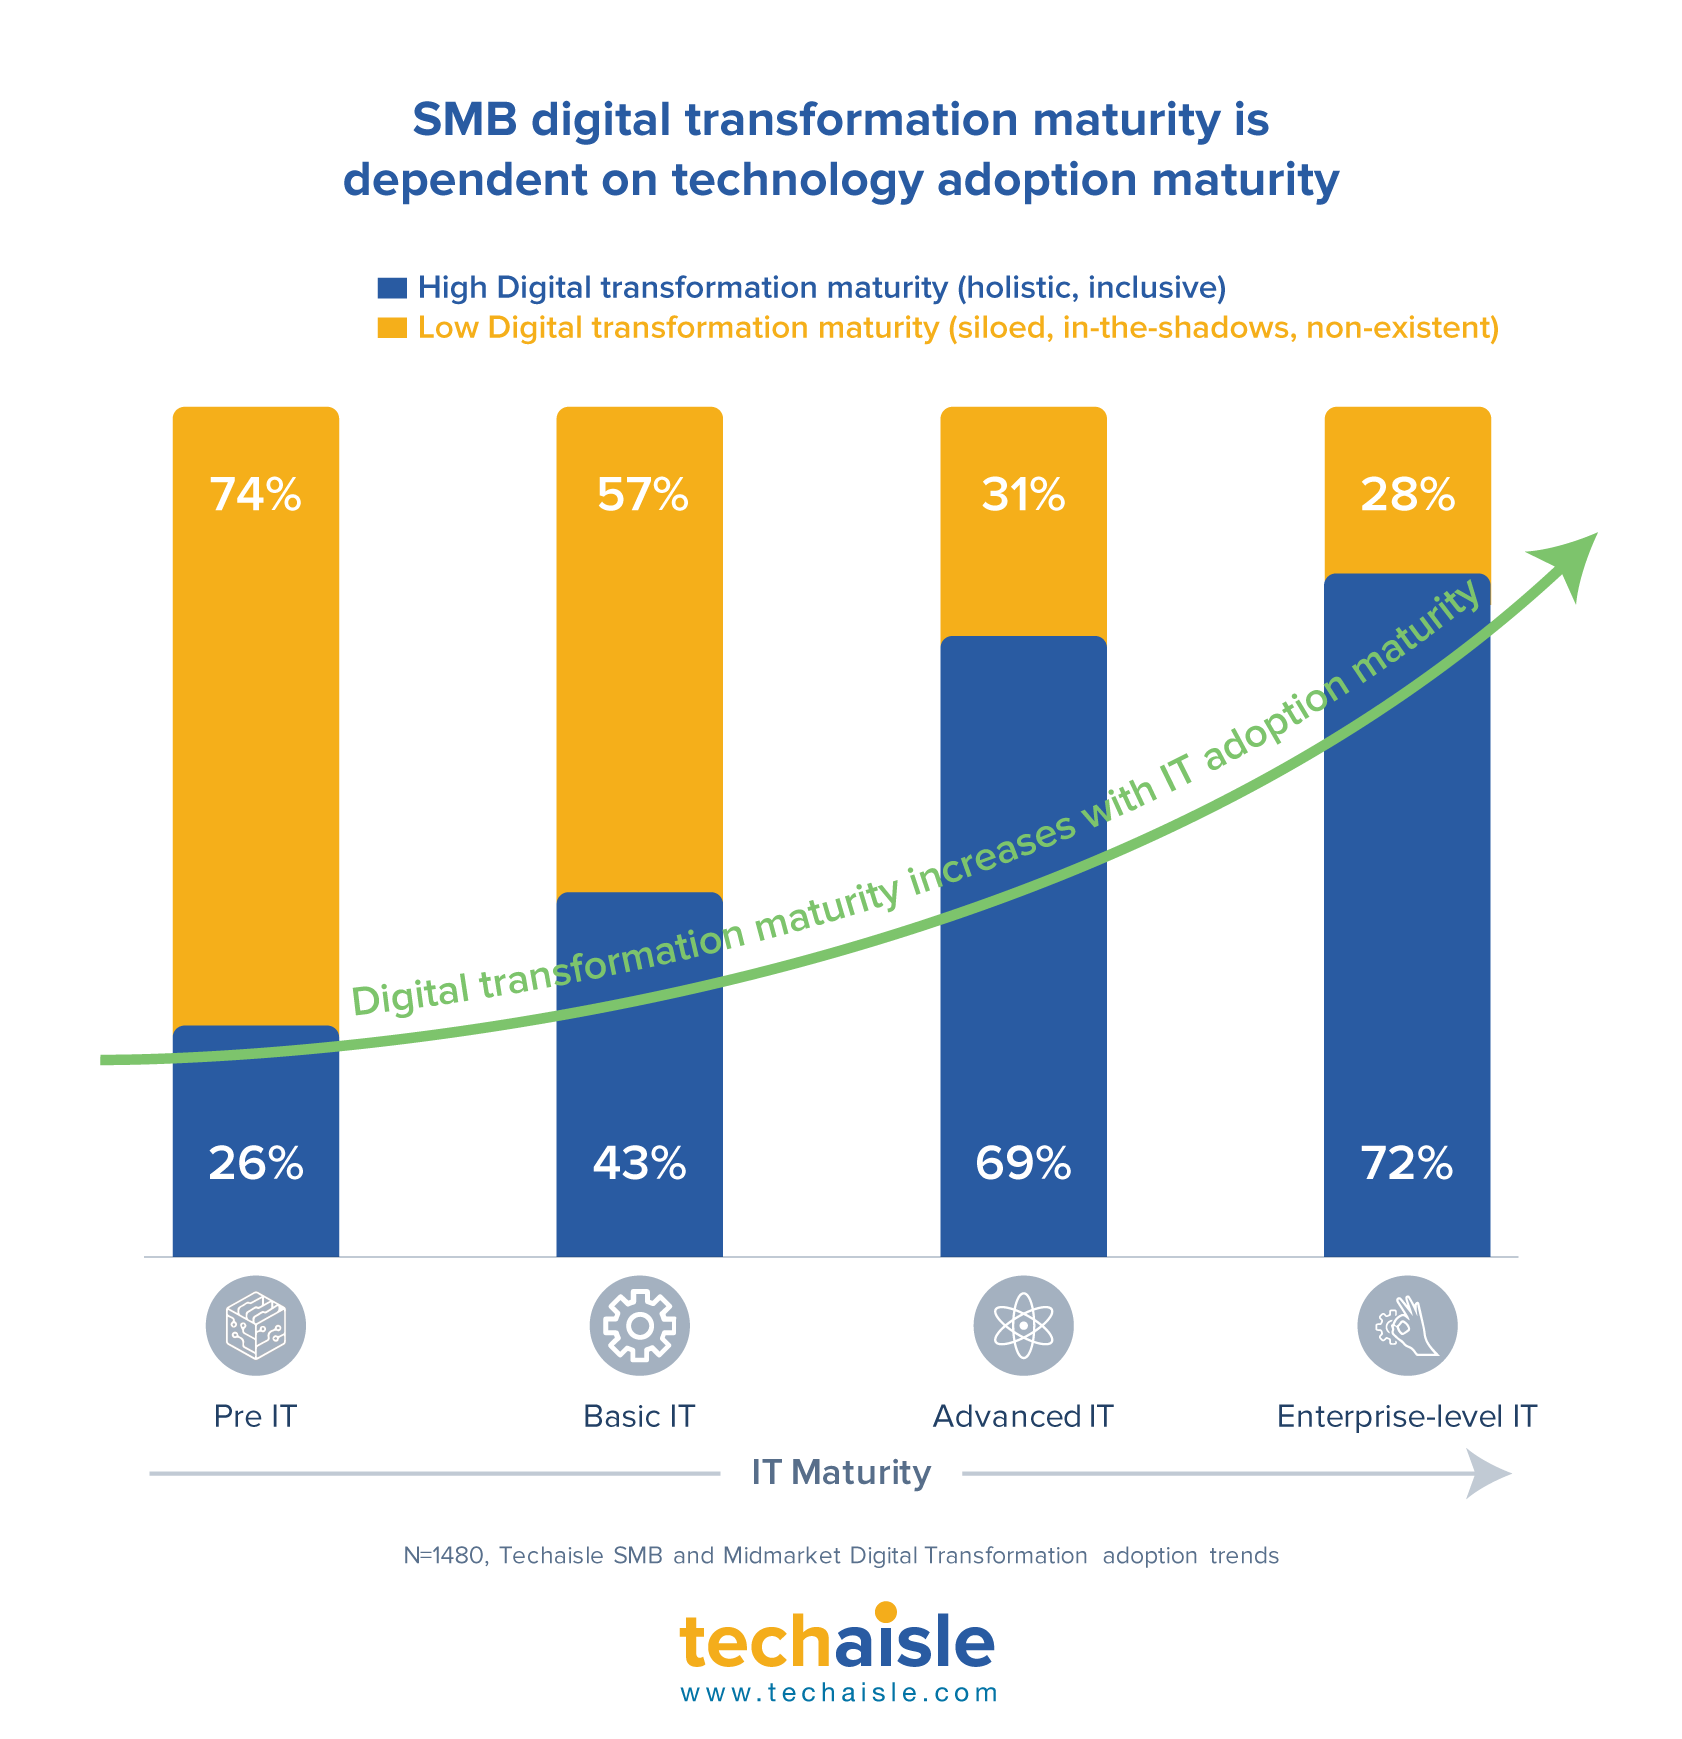 techaisle smb digital transformation depends on it maturity